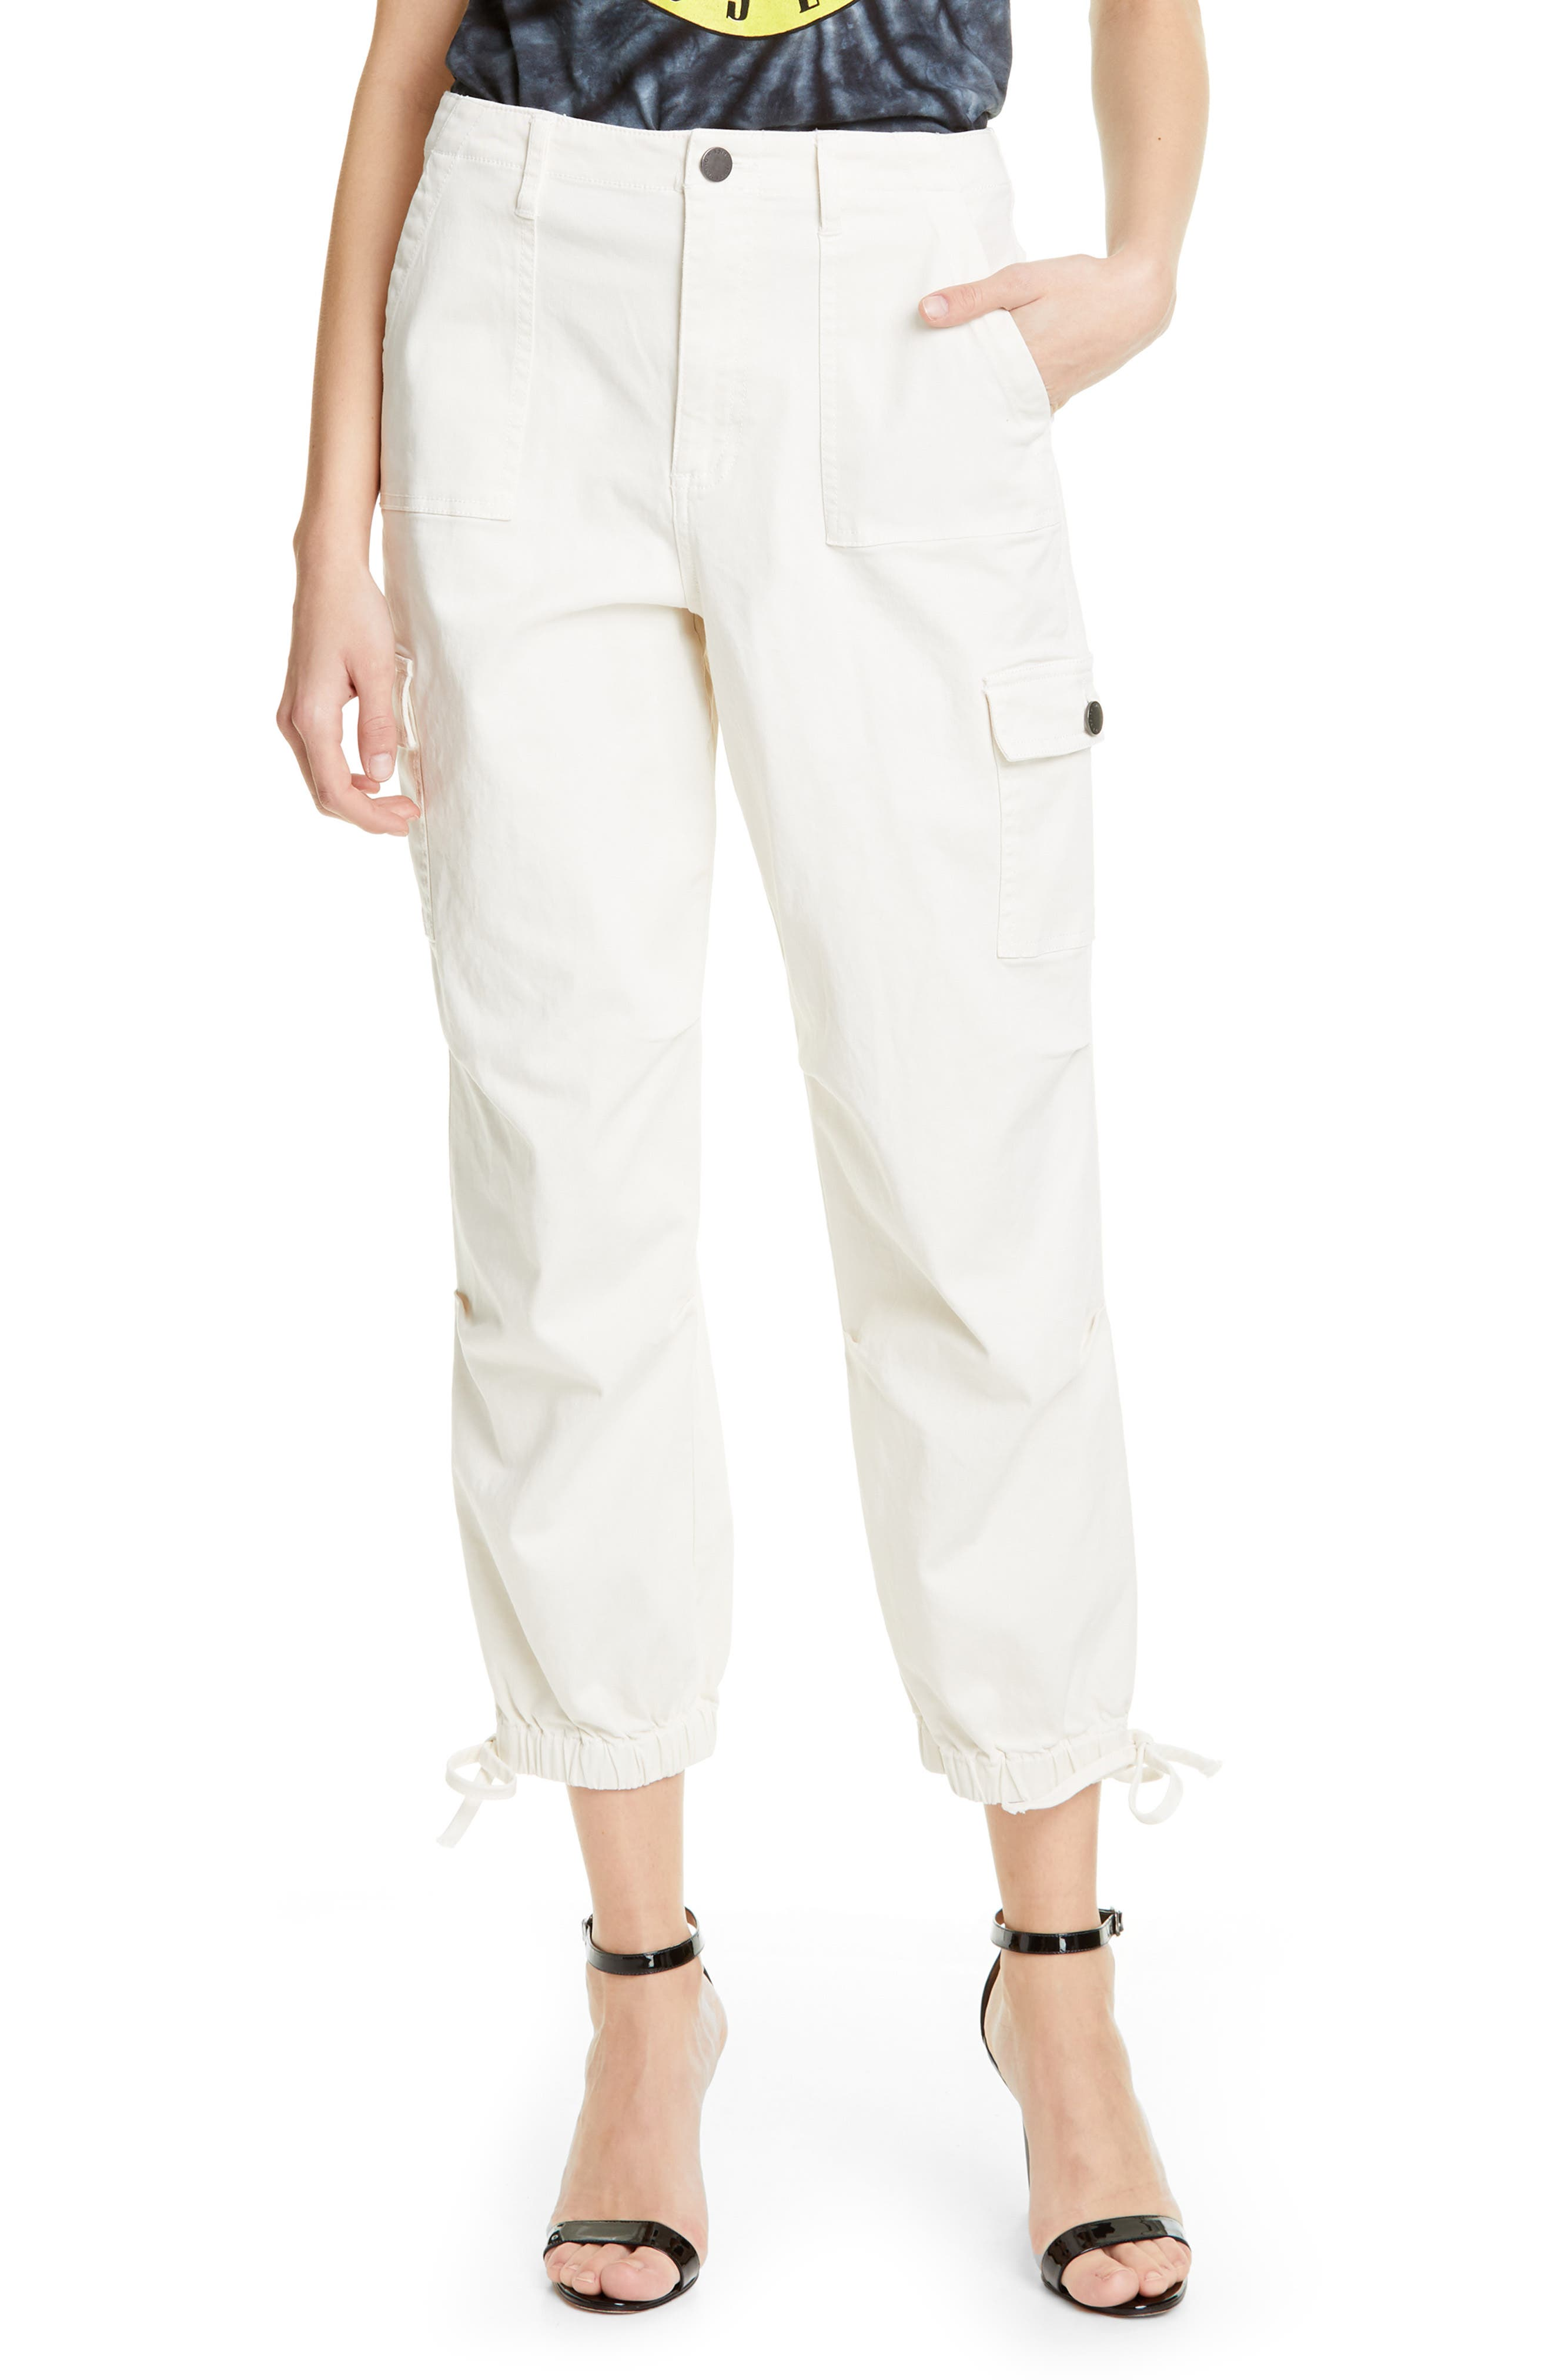 Alice + Olivia Jeans Crop Cargo Pants, White